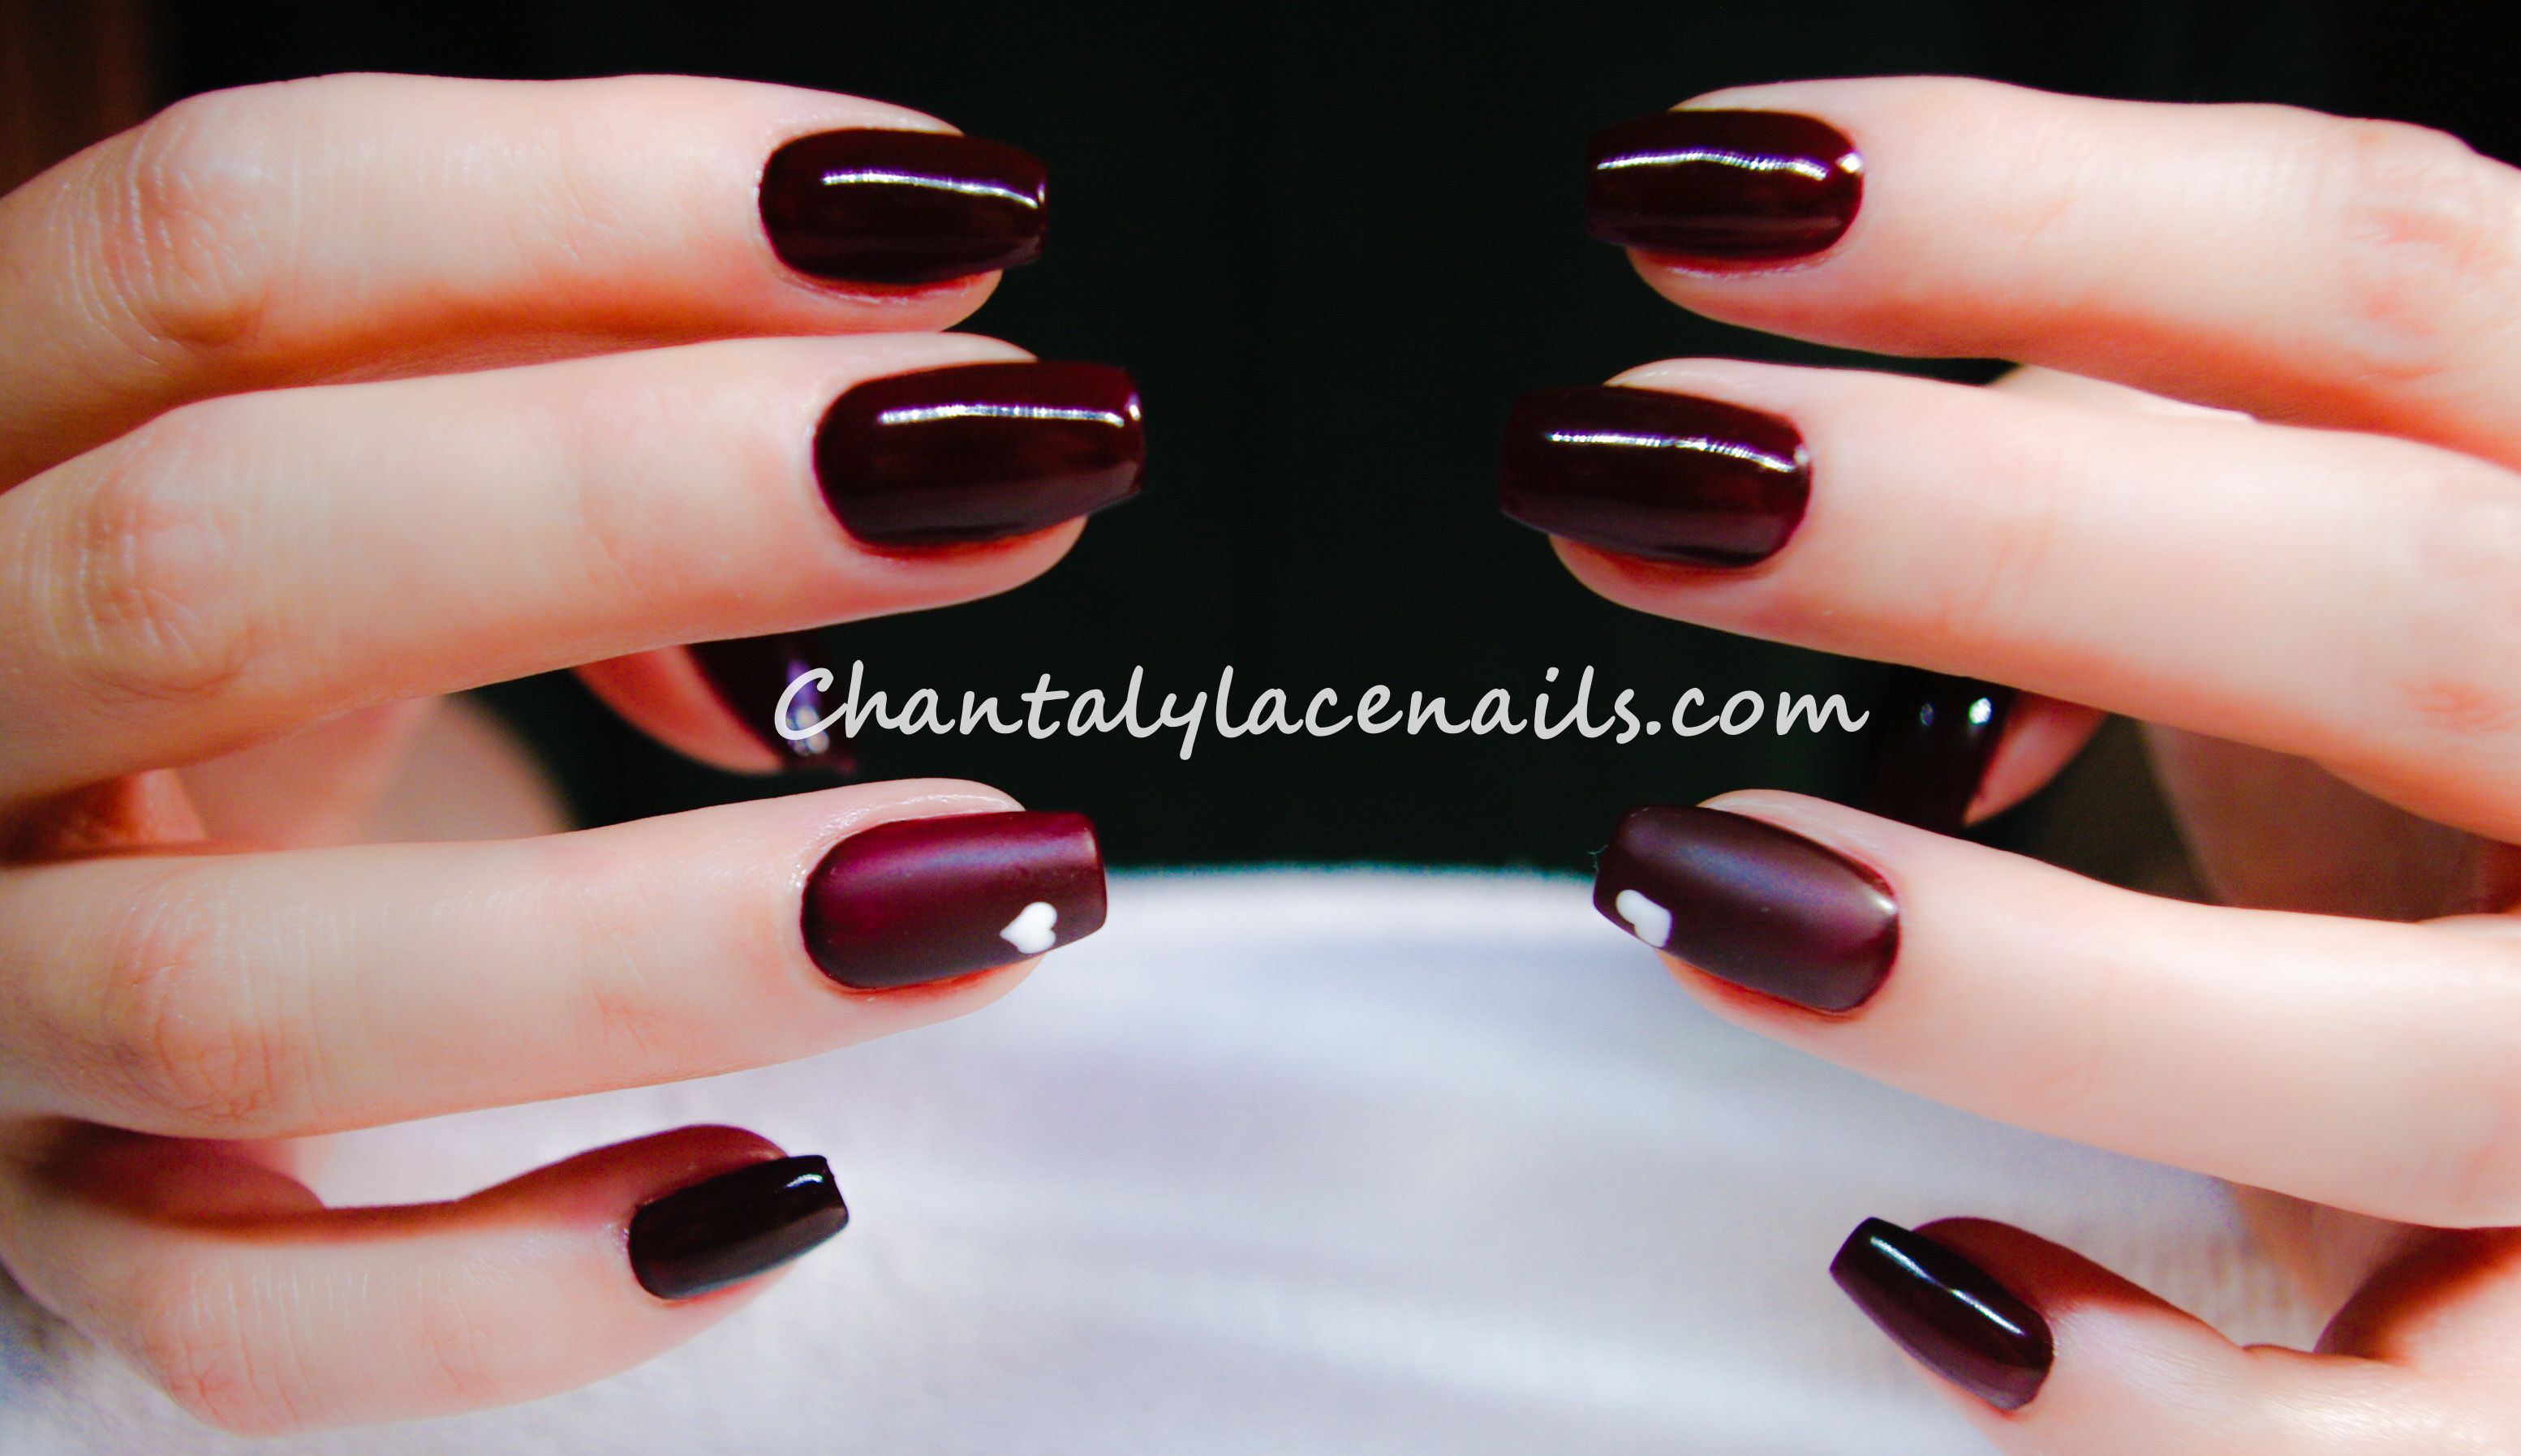 Deep Red/ballerina nails/ nail art heart | Nails by Chantalylace ...